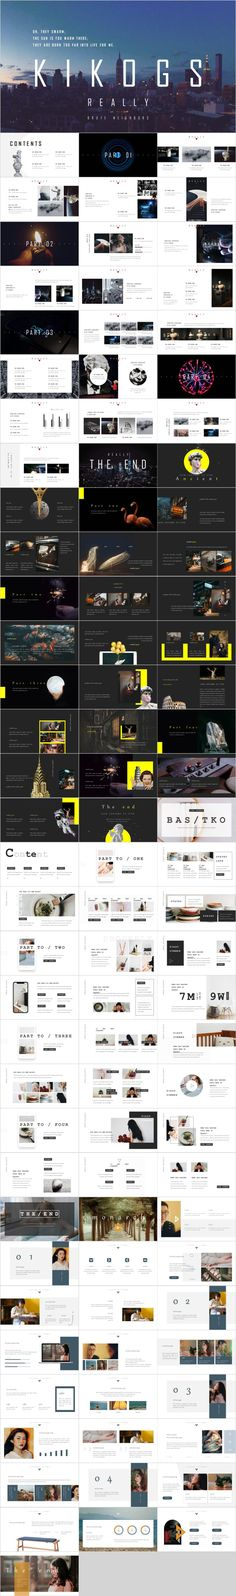 4 in 1 creative professional PowerPoint Template Simple Powerpoint Templates, Template Web, Professional Powerpoint Templates, Creative Powerpoint, Keynote Template, Presentation Software, Presentation Design, Professional Presentation, Business Design